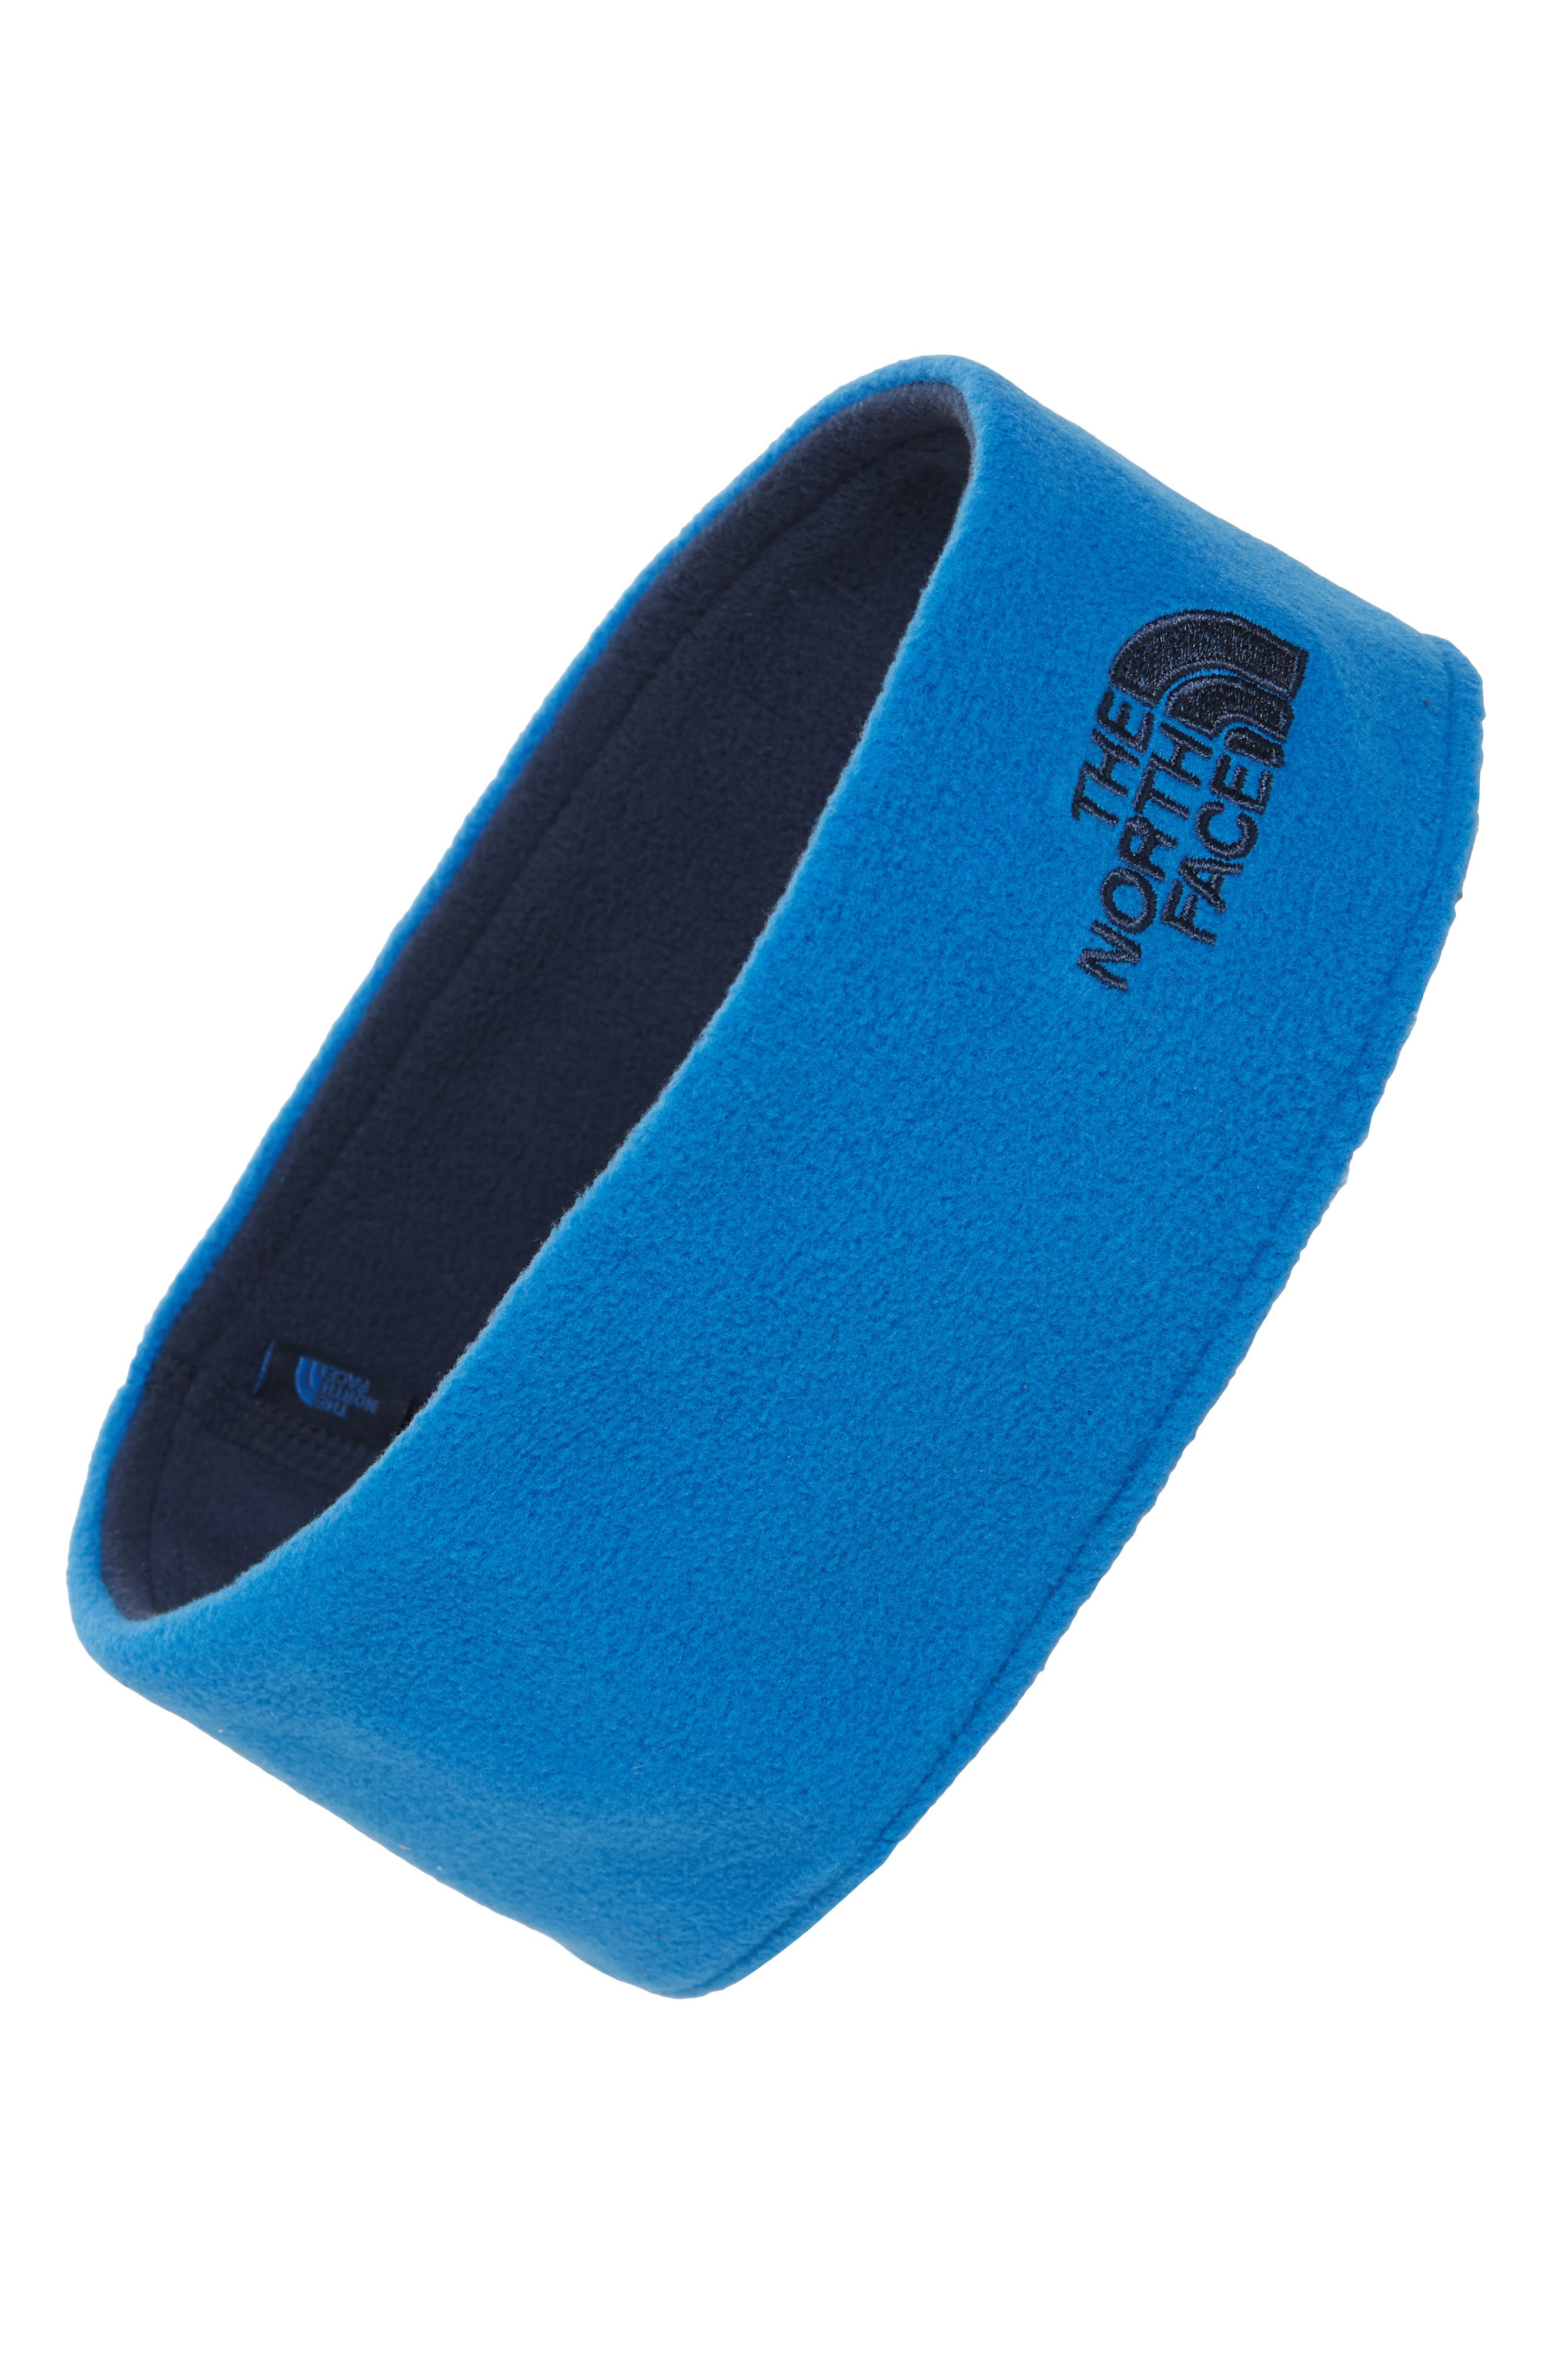 THE NORTH FACE,                             Standard Issue Reversible Earband,                             Main thumbnail 1, color,                             TURKISH SEA/ COSMIC BLUE